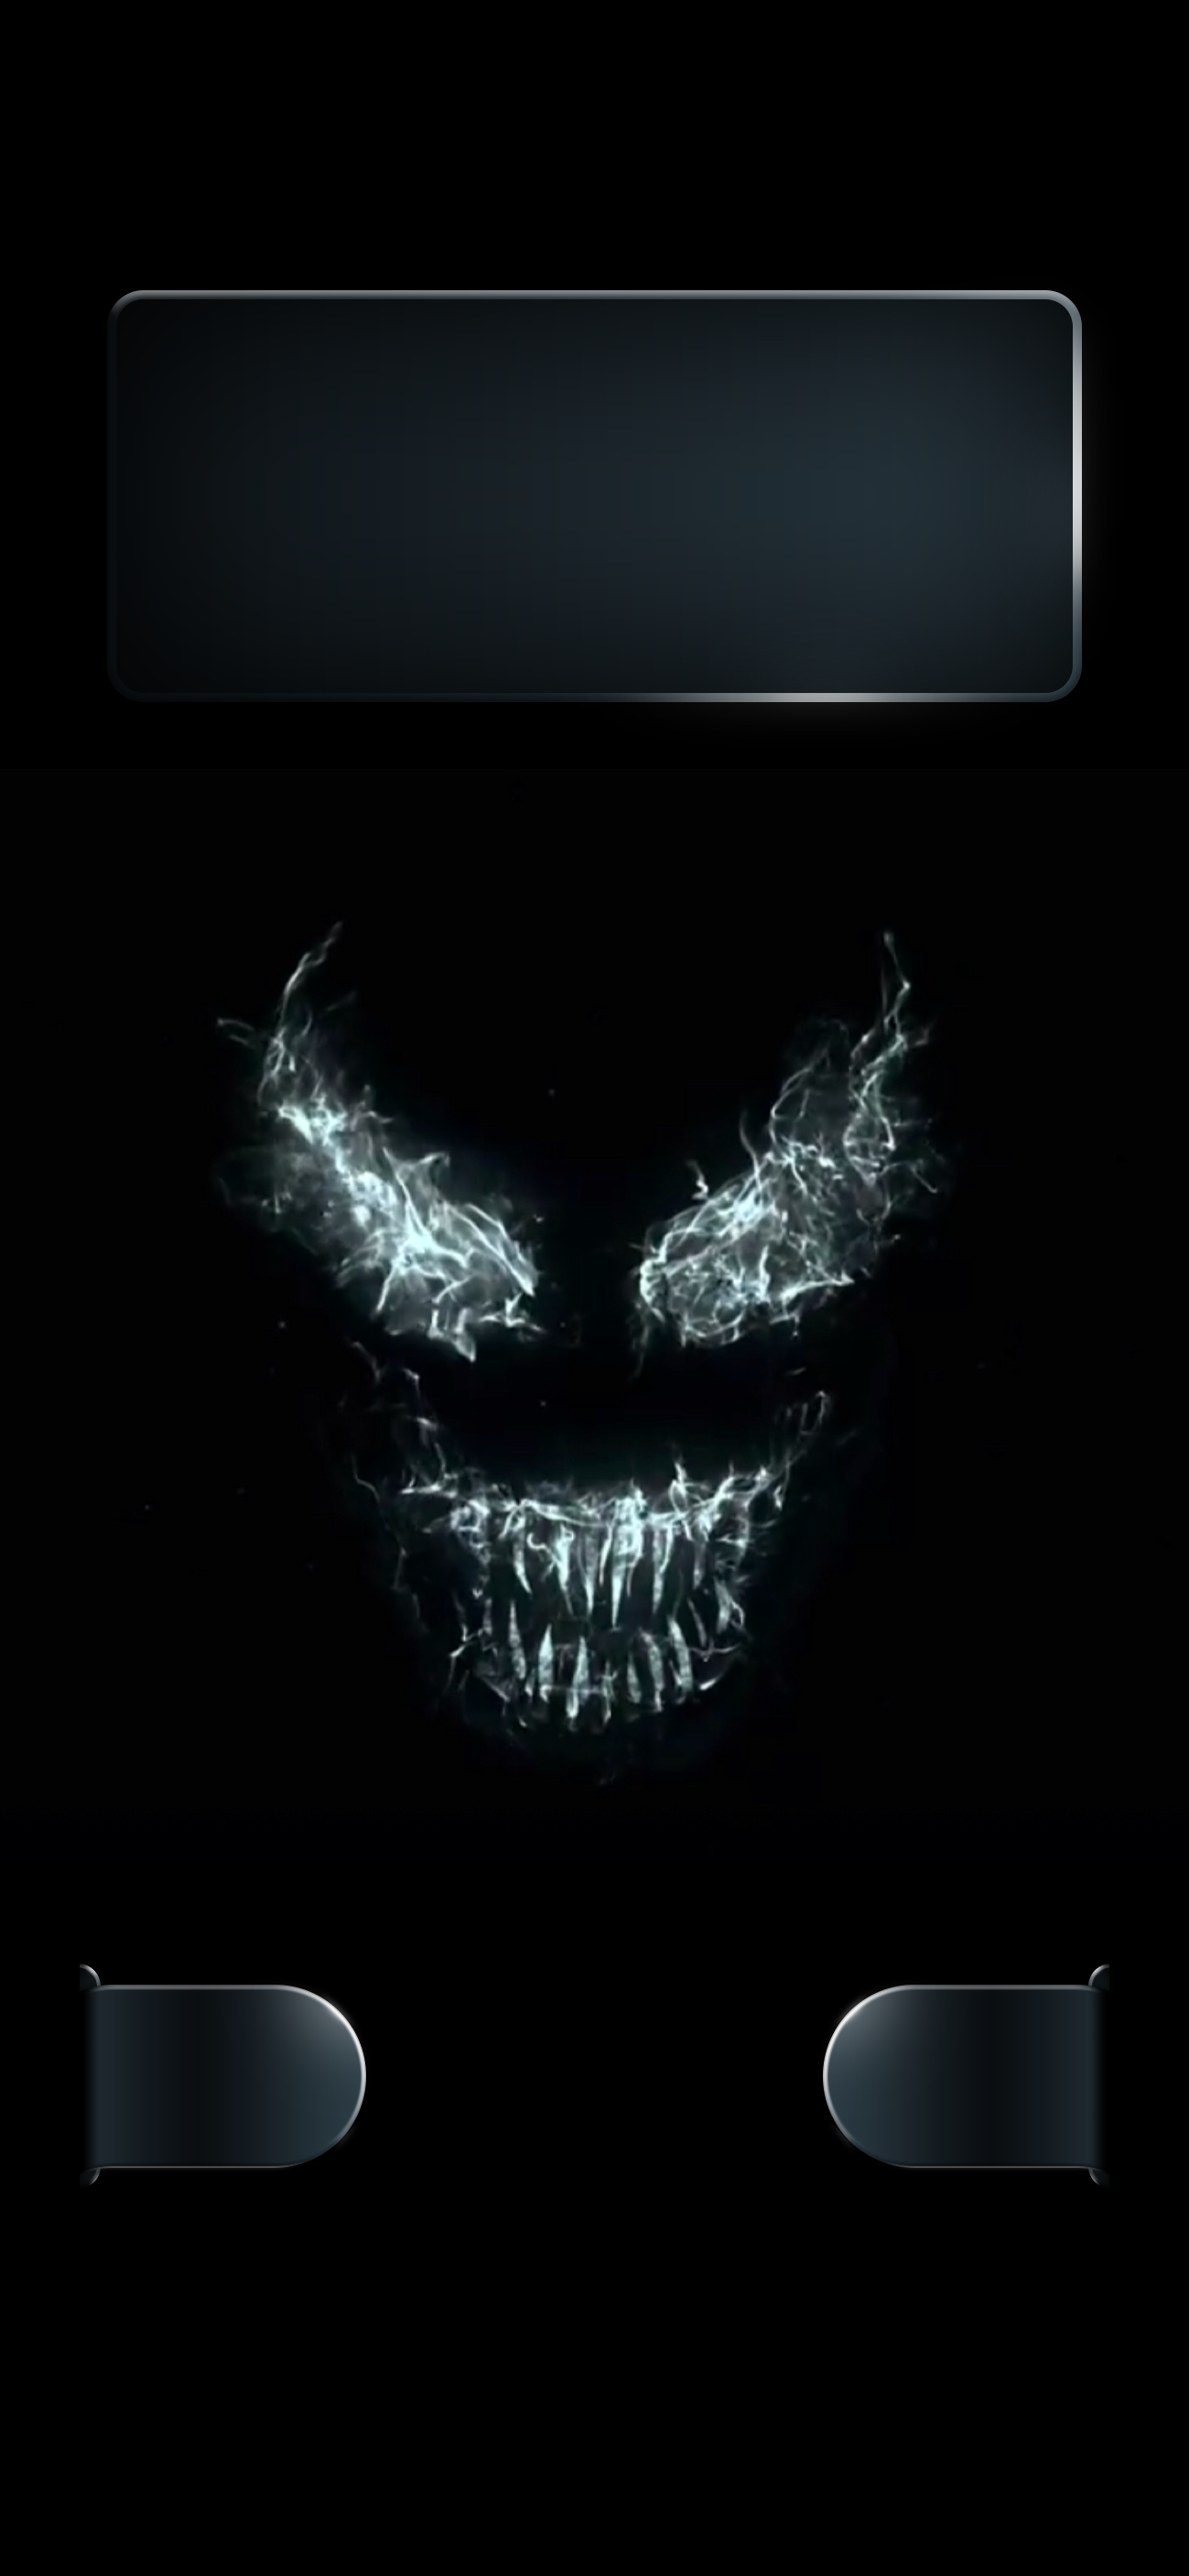 Venom Wallpaper Iphone X Face In 2019 Pinterest Iphone